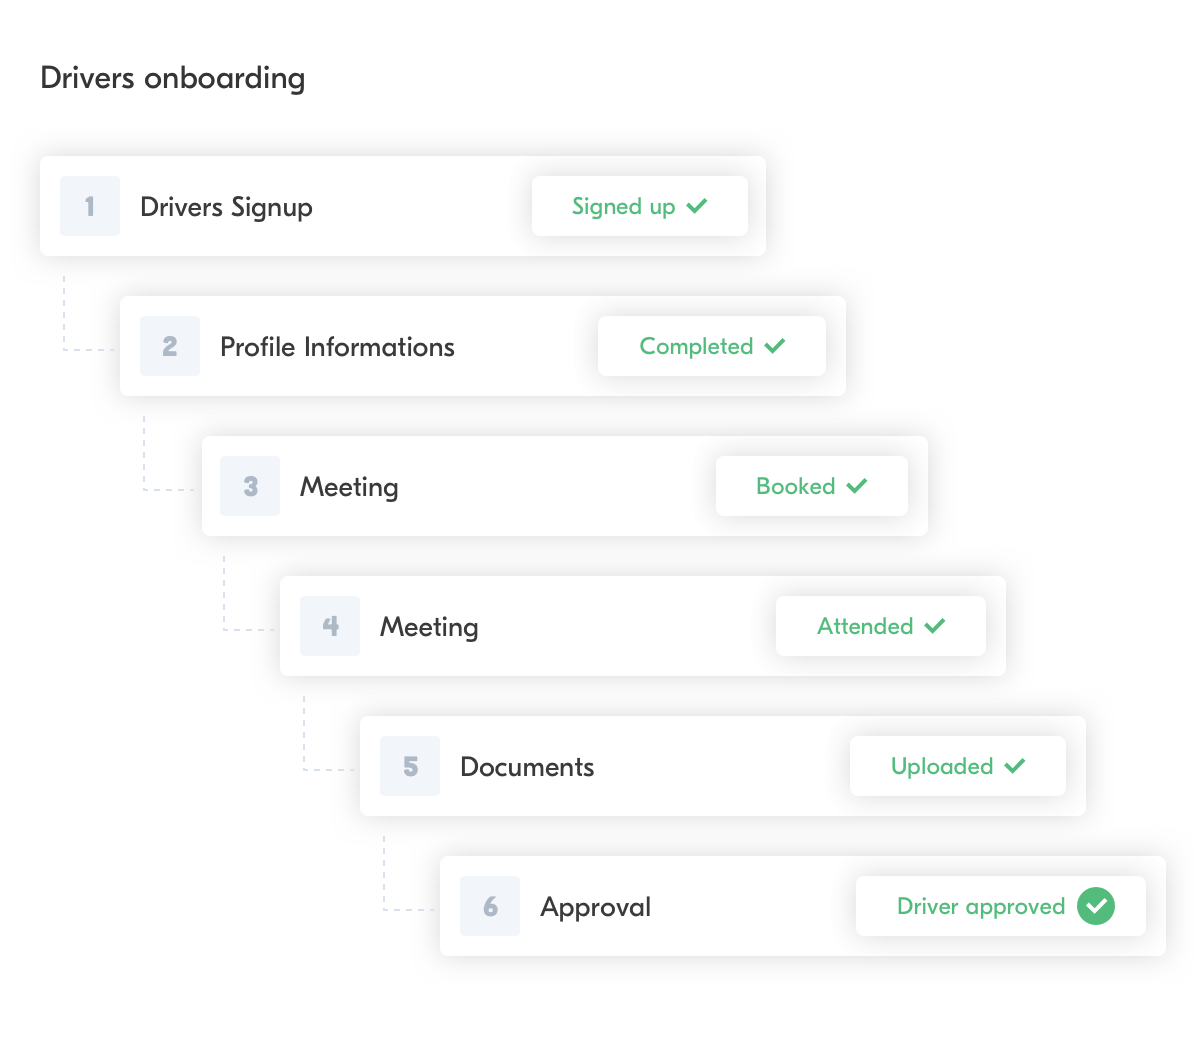 How Heetch Is Using Forest To Manage Drivers Onboarding